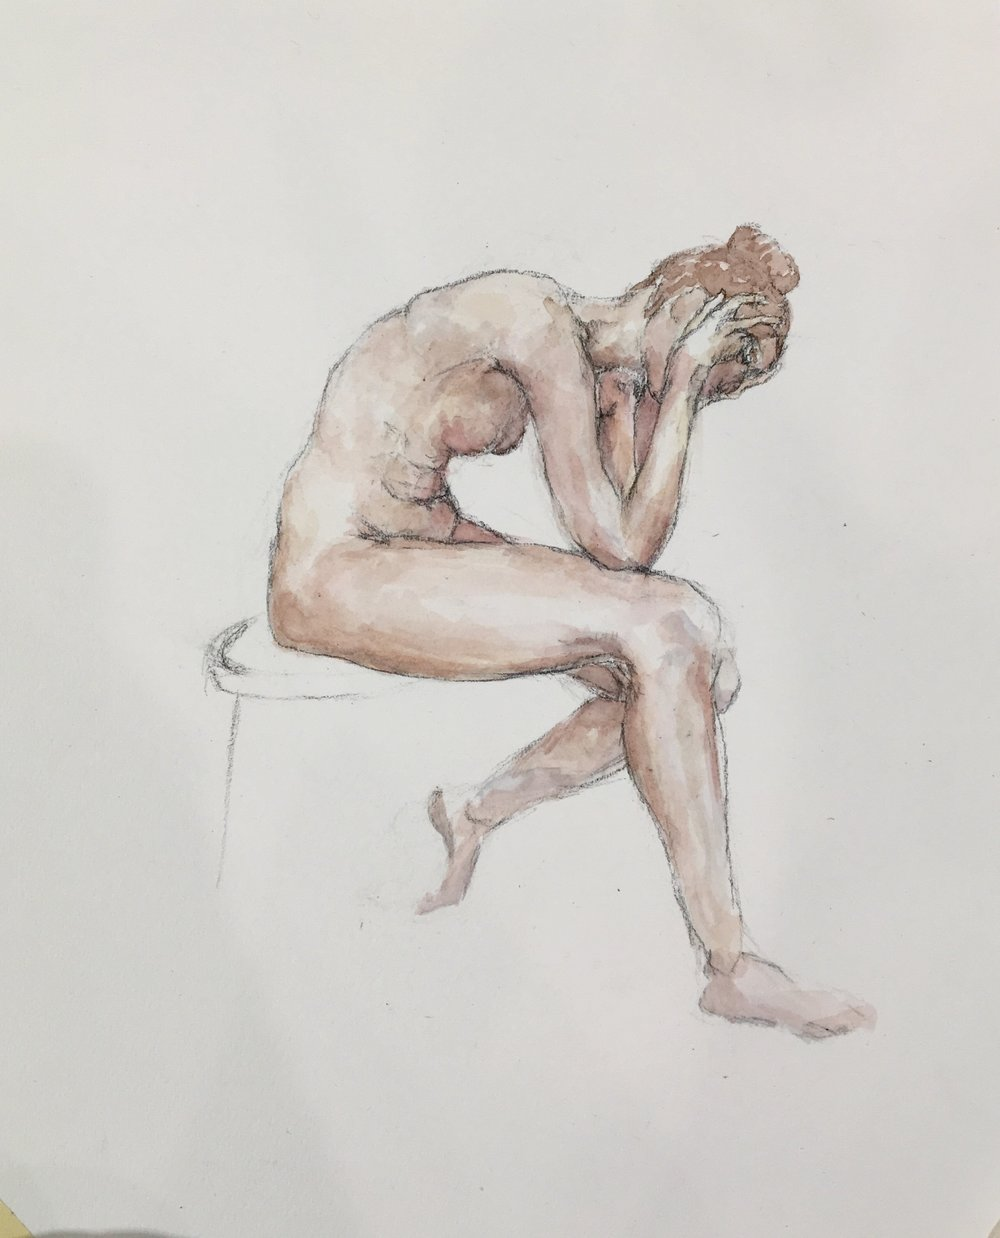 2hr Figure Painting of Female, Watercolor on Paper, 2016